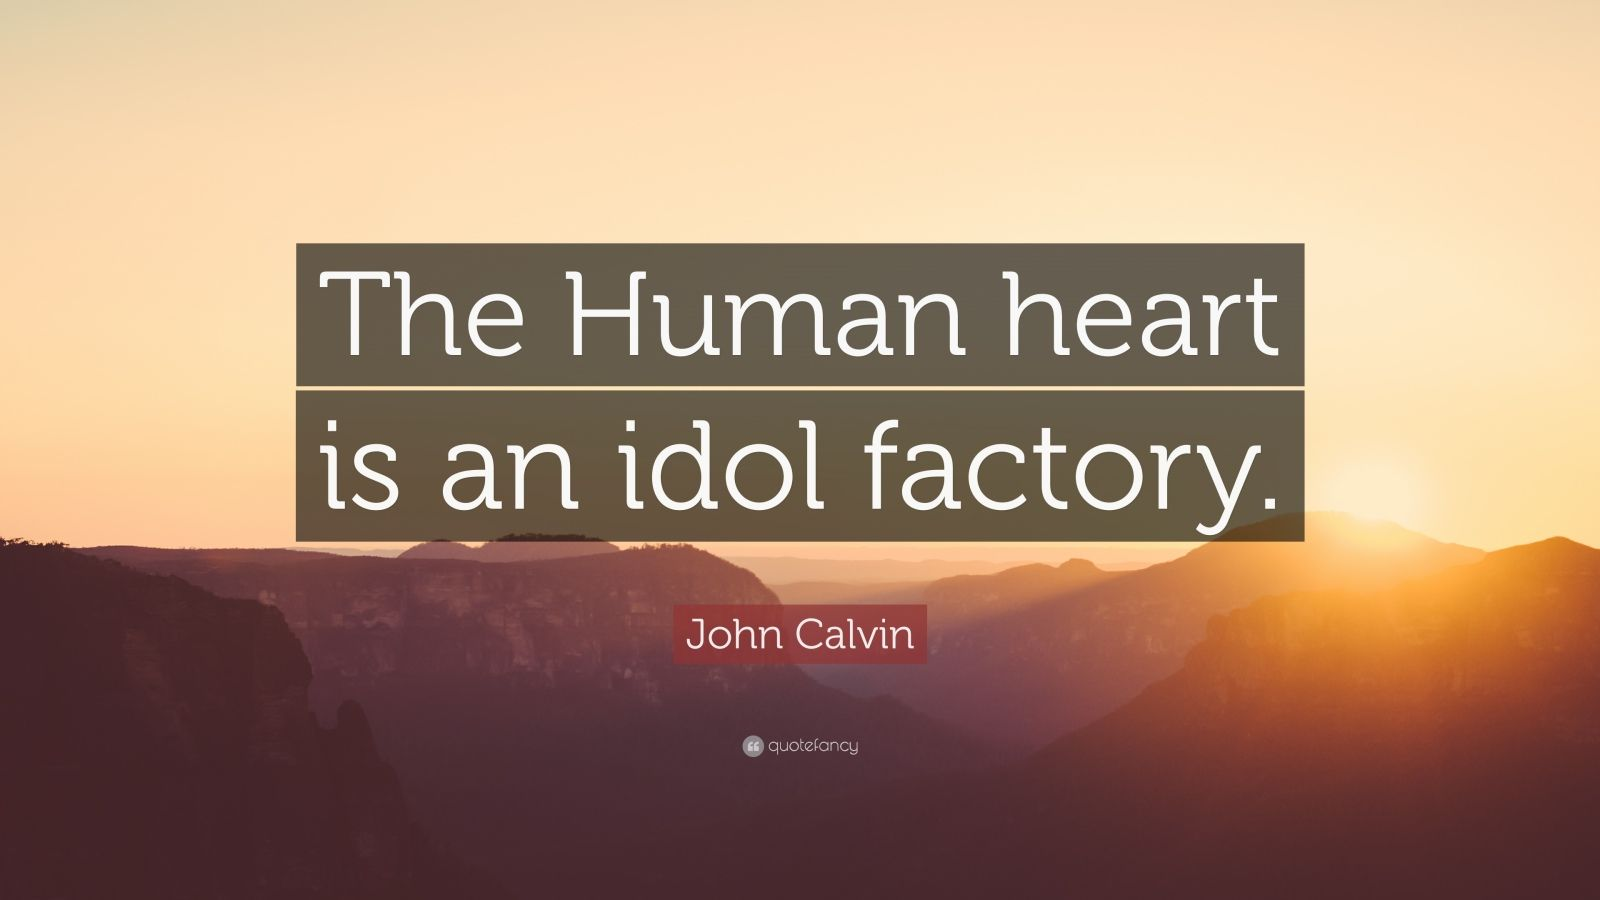 Wallpaper Quotes About Time John Calvin Quote The Human Heart Is An Idol Factory